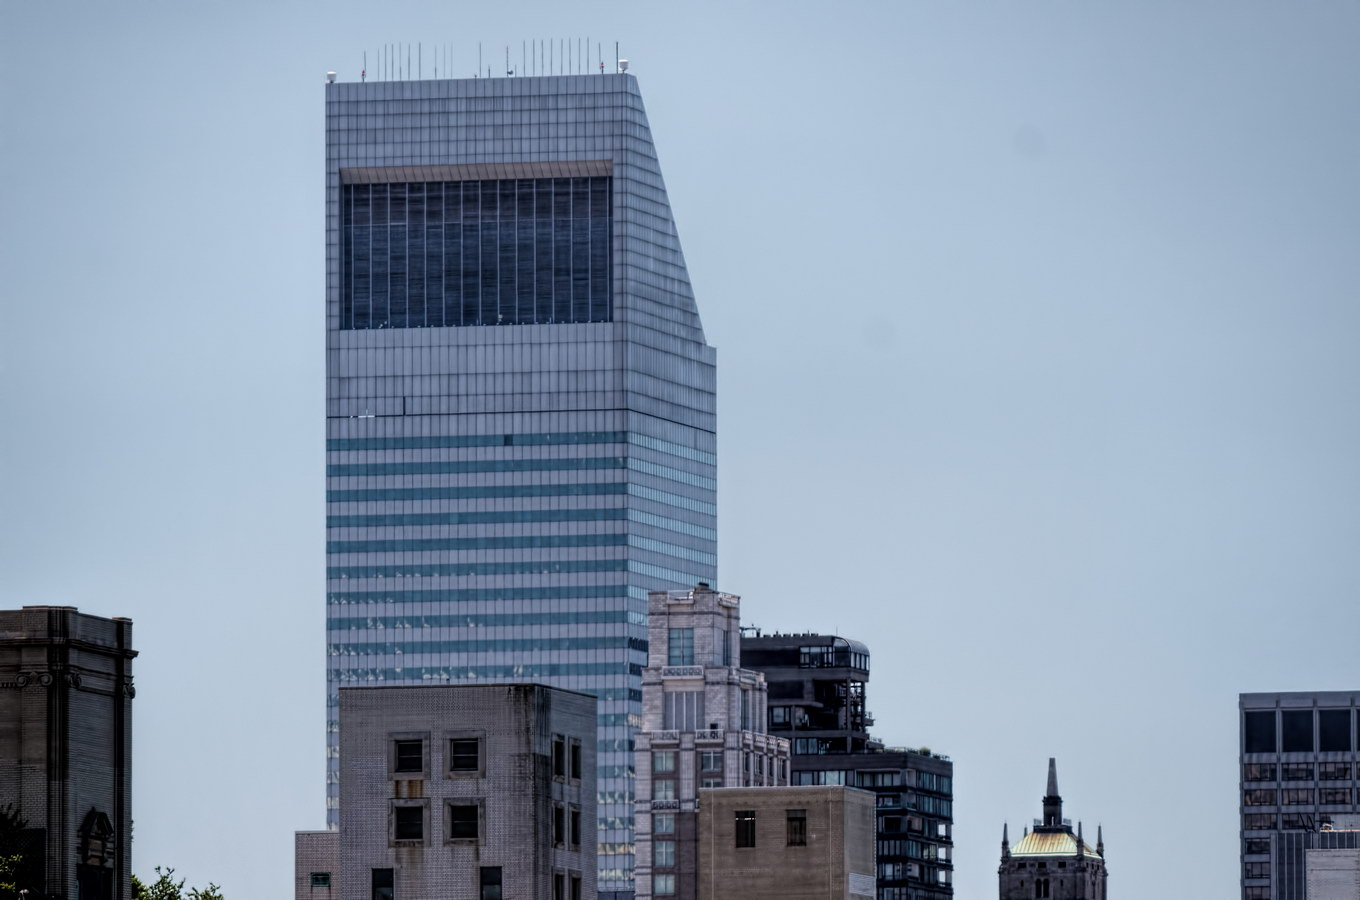 Citigroup Center aka 601 Lexington Avenue